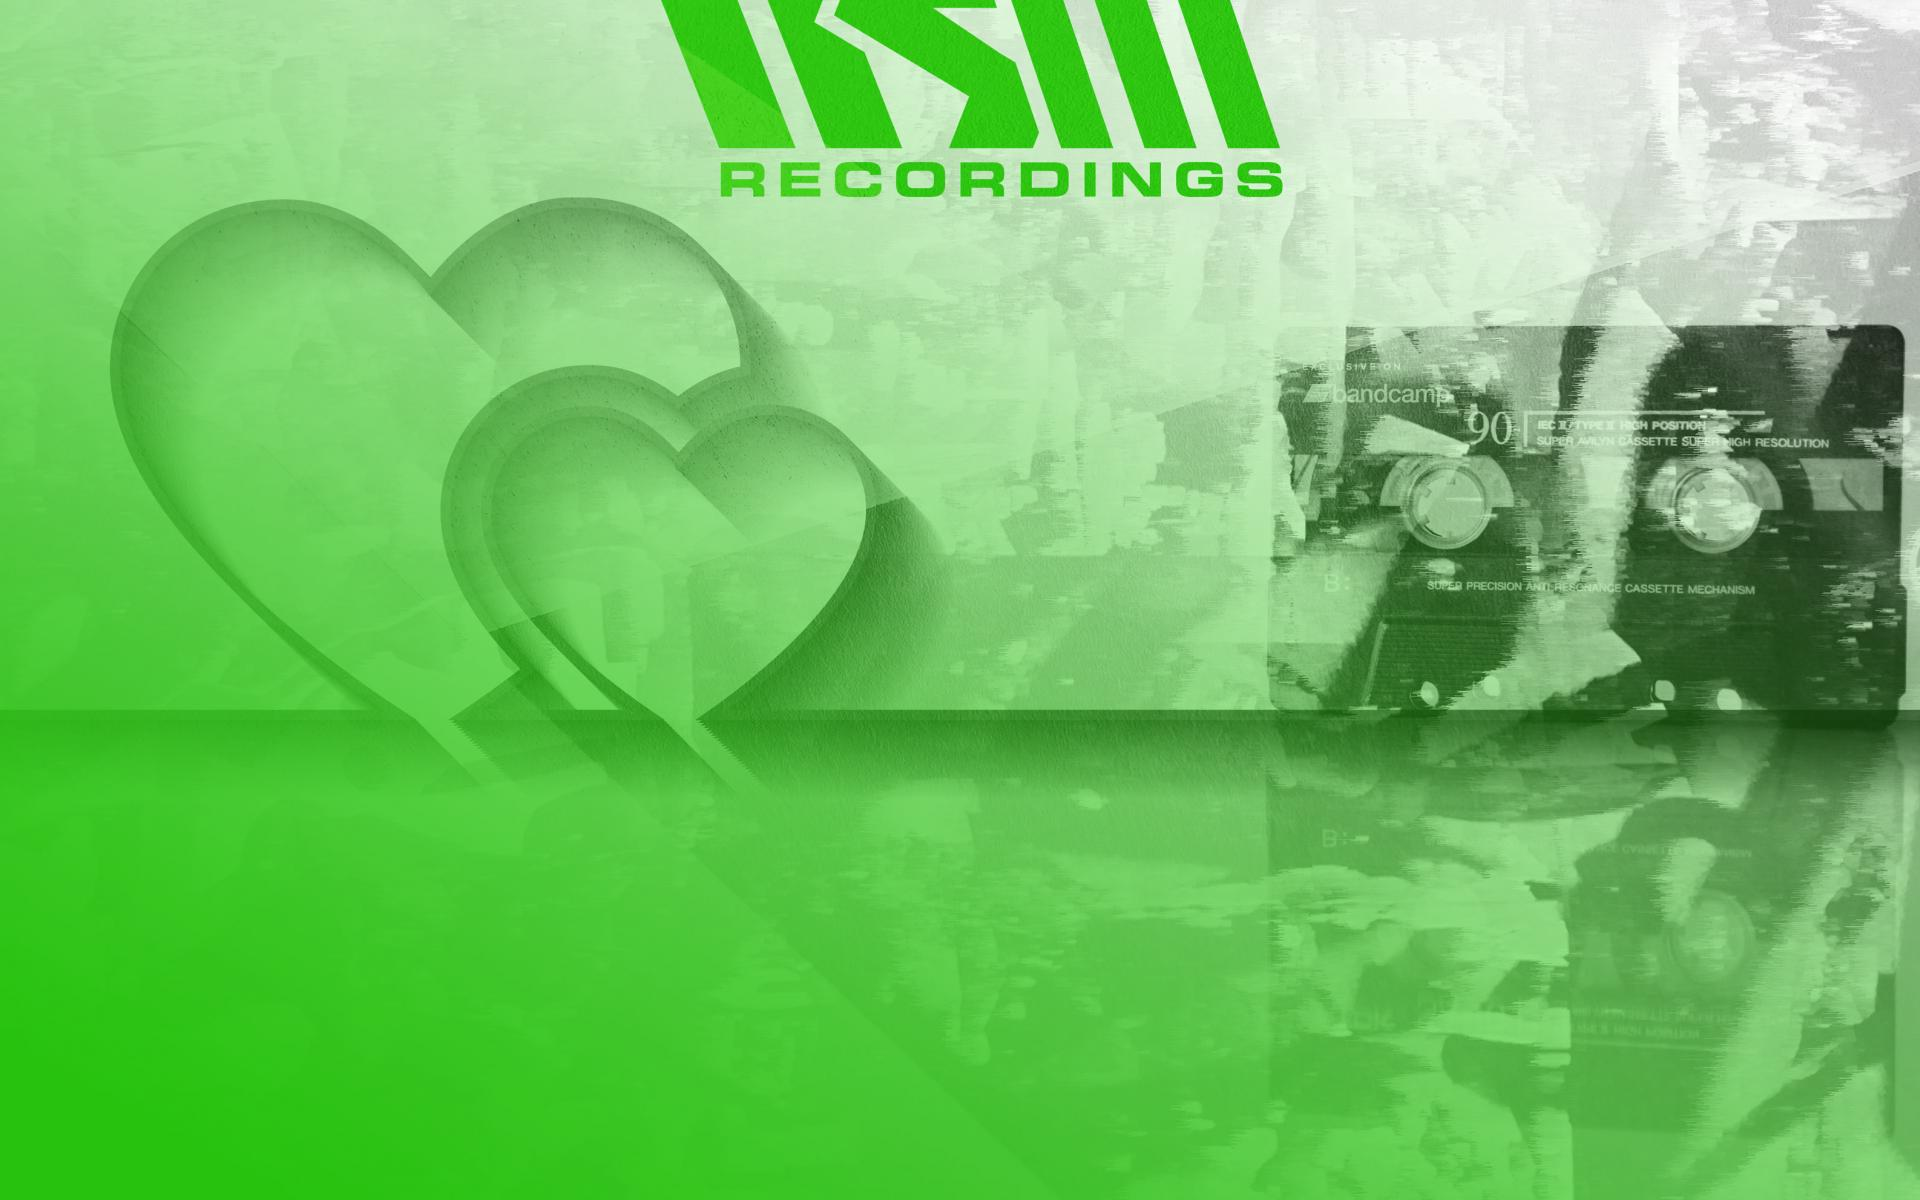 USM Recordings releases music only on Bandcamp